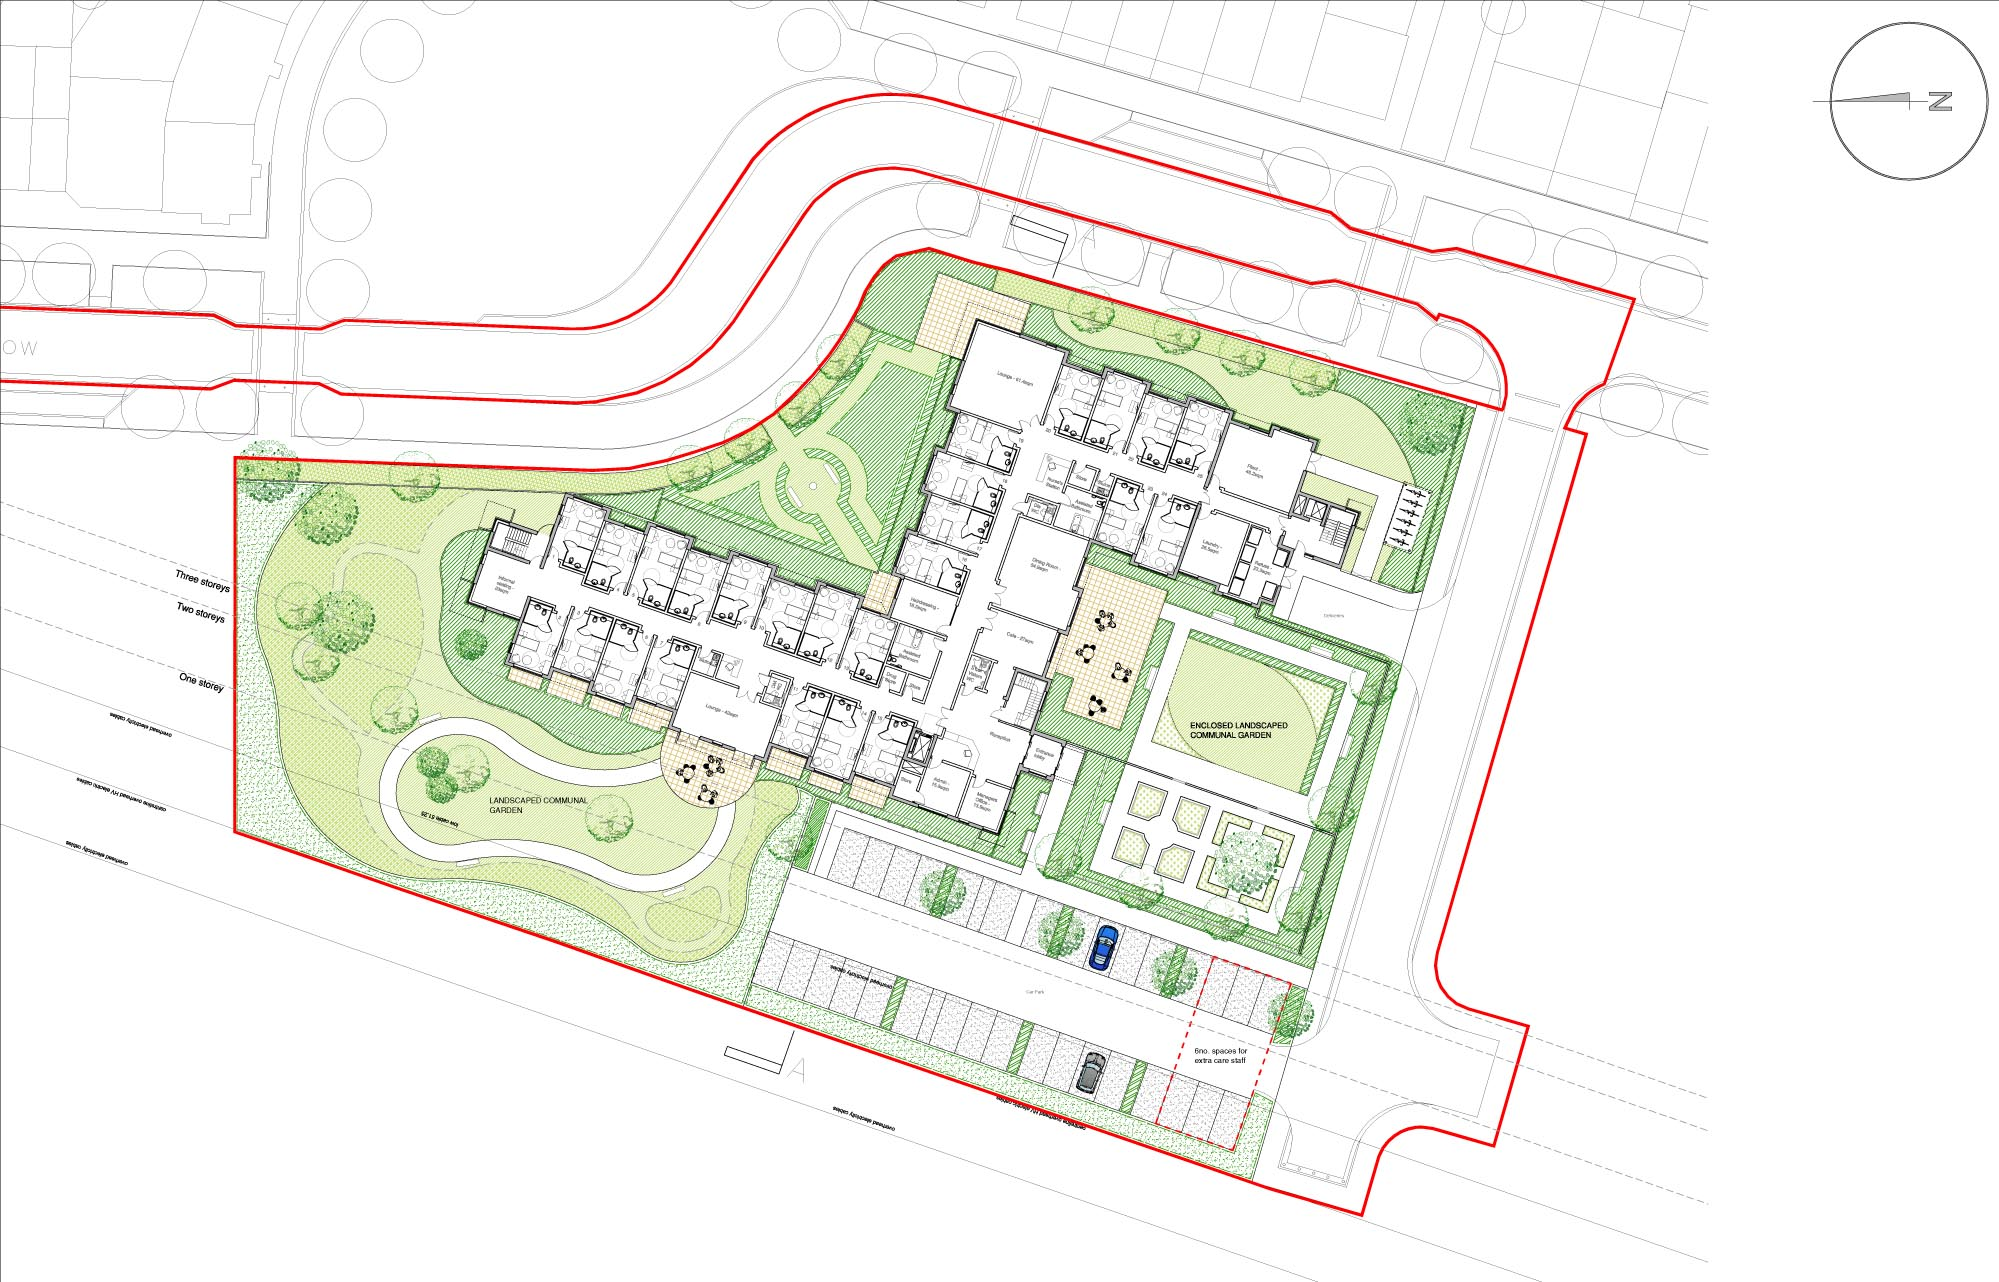 Nursing Home Site Plan